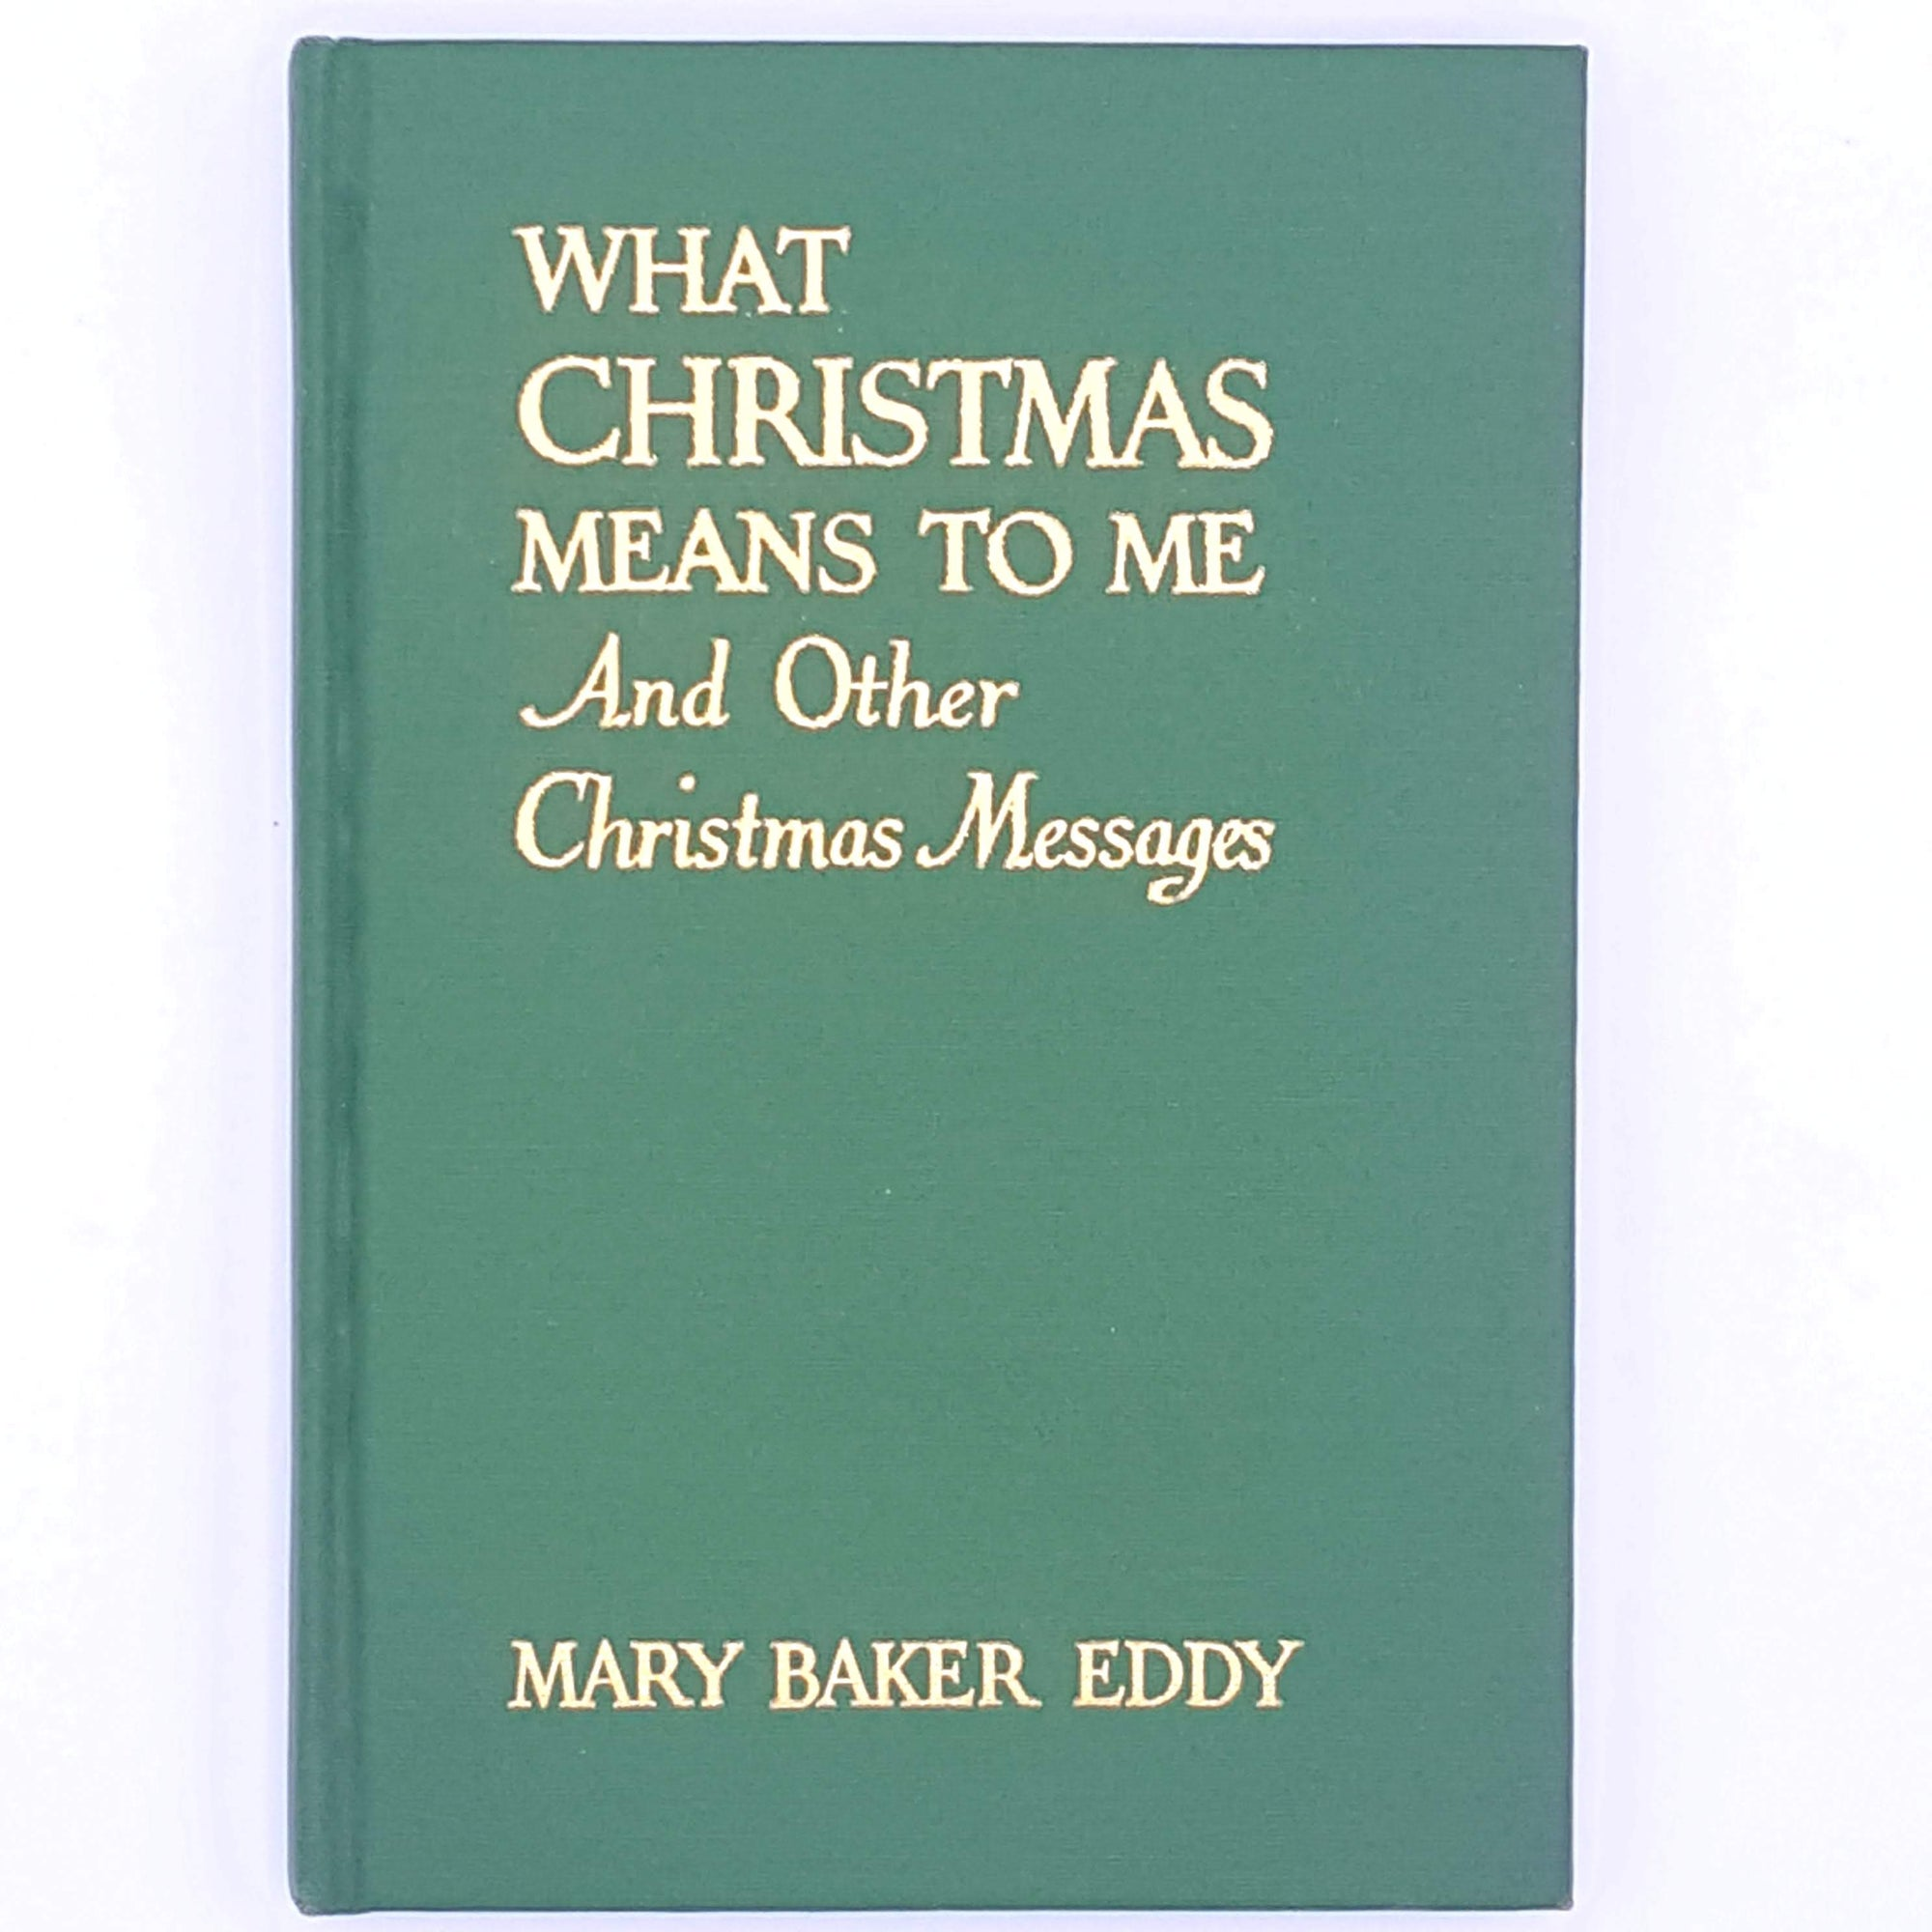 What Christmas Means To Me, Mary Baker Eddy, 1949